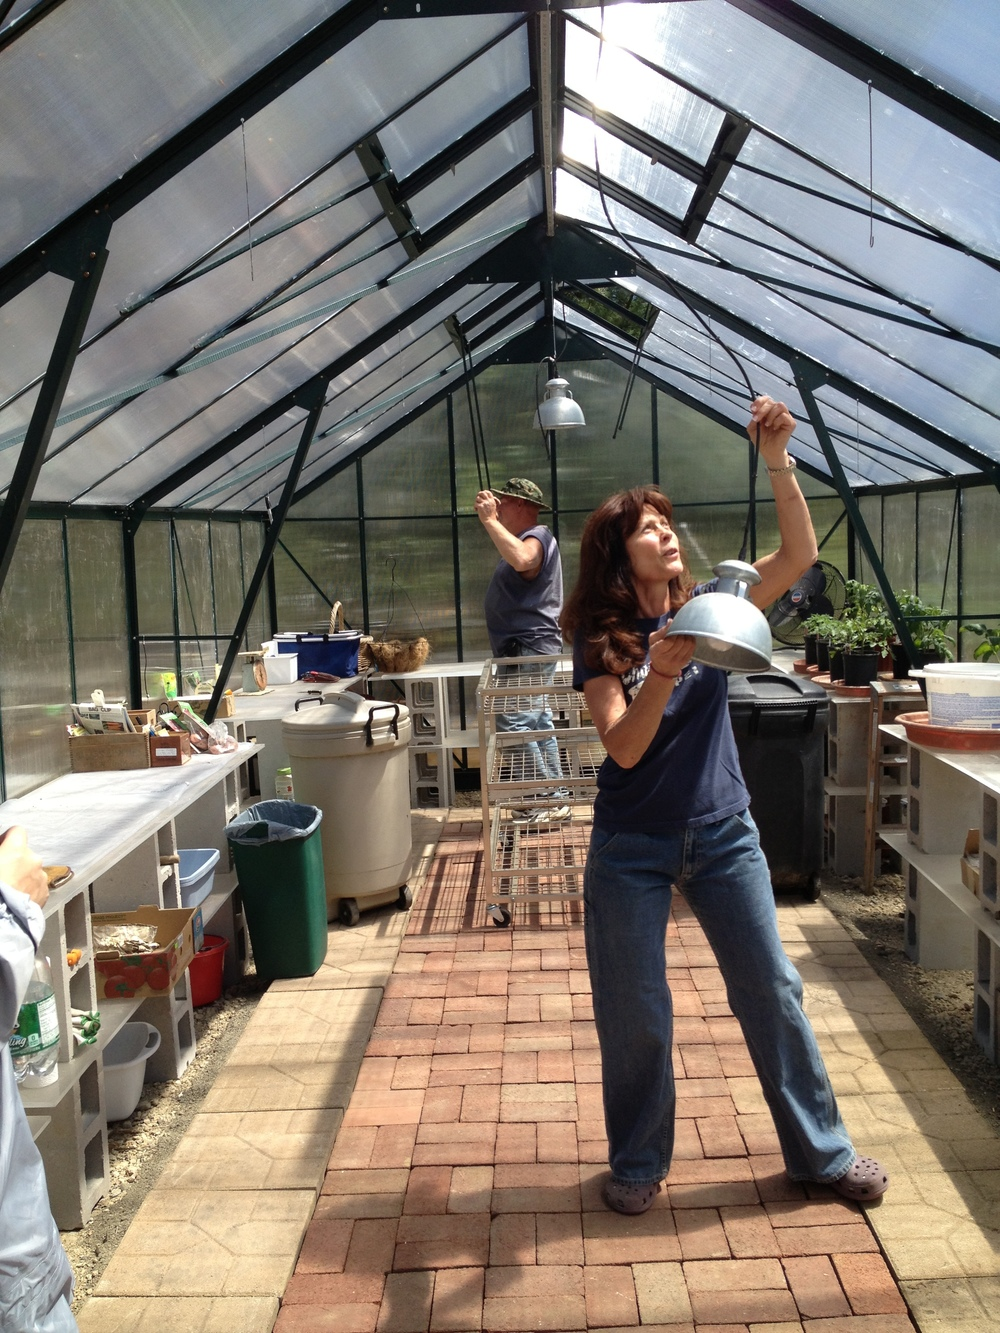 Wayne and Linda in the greenhouse. The lighting is so multi-functional - we are able to unhook it and rehang it over our workspace.